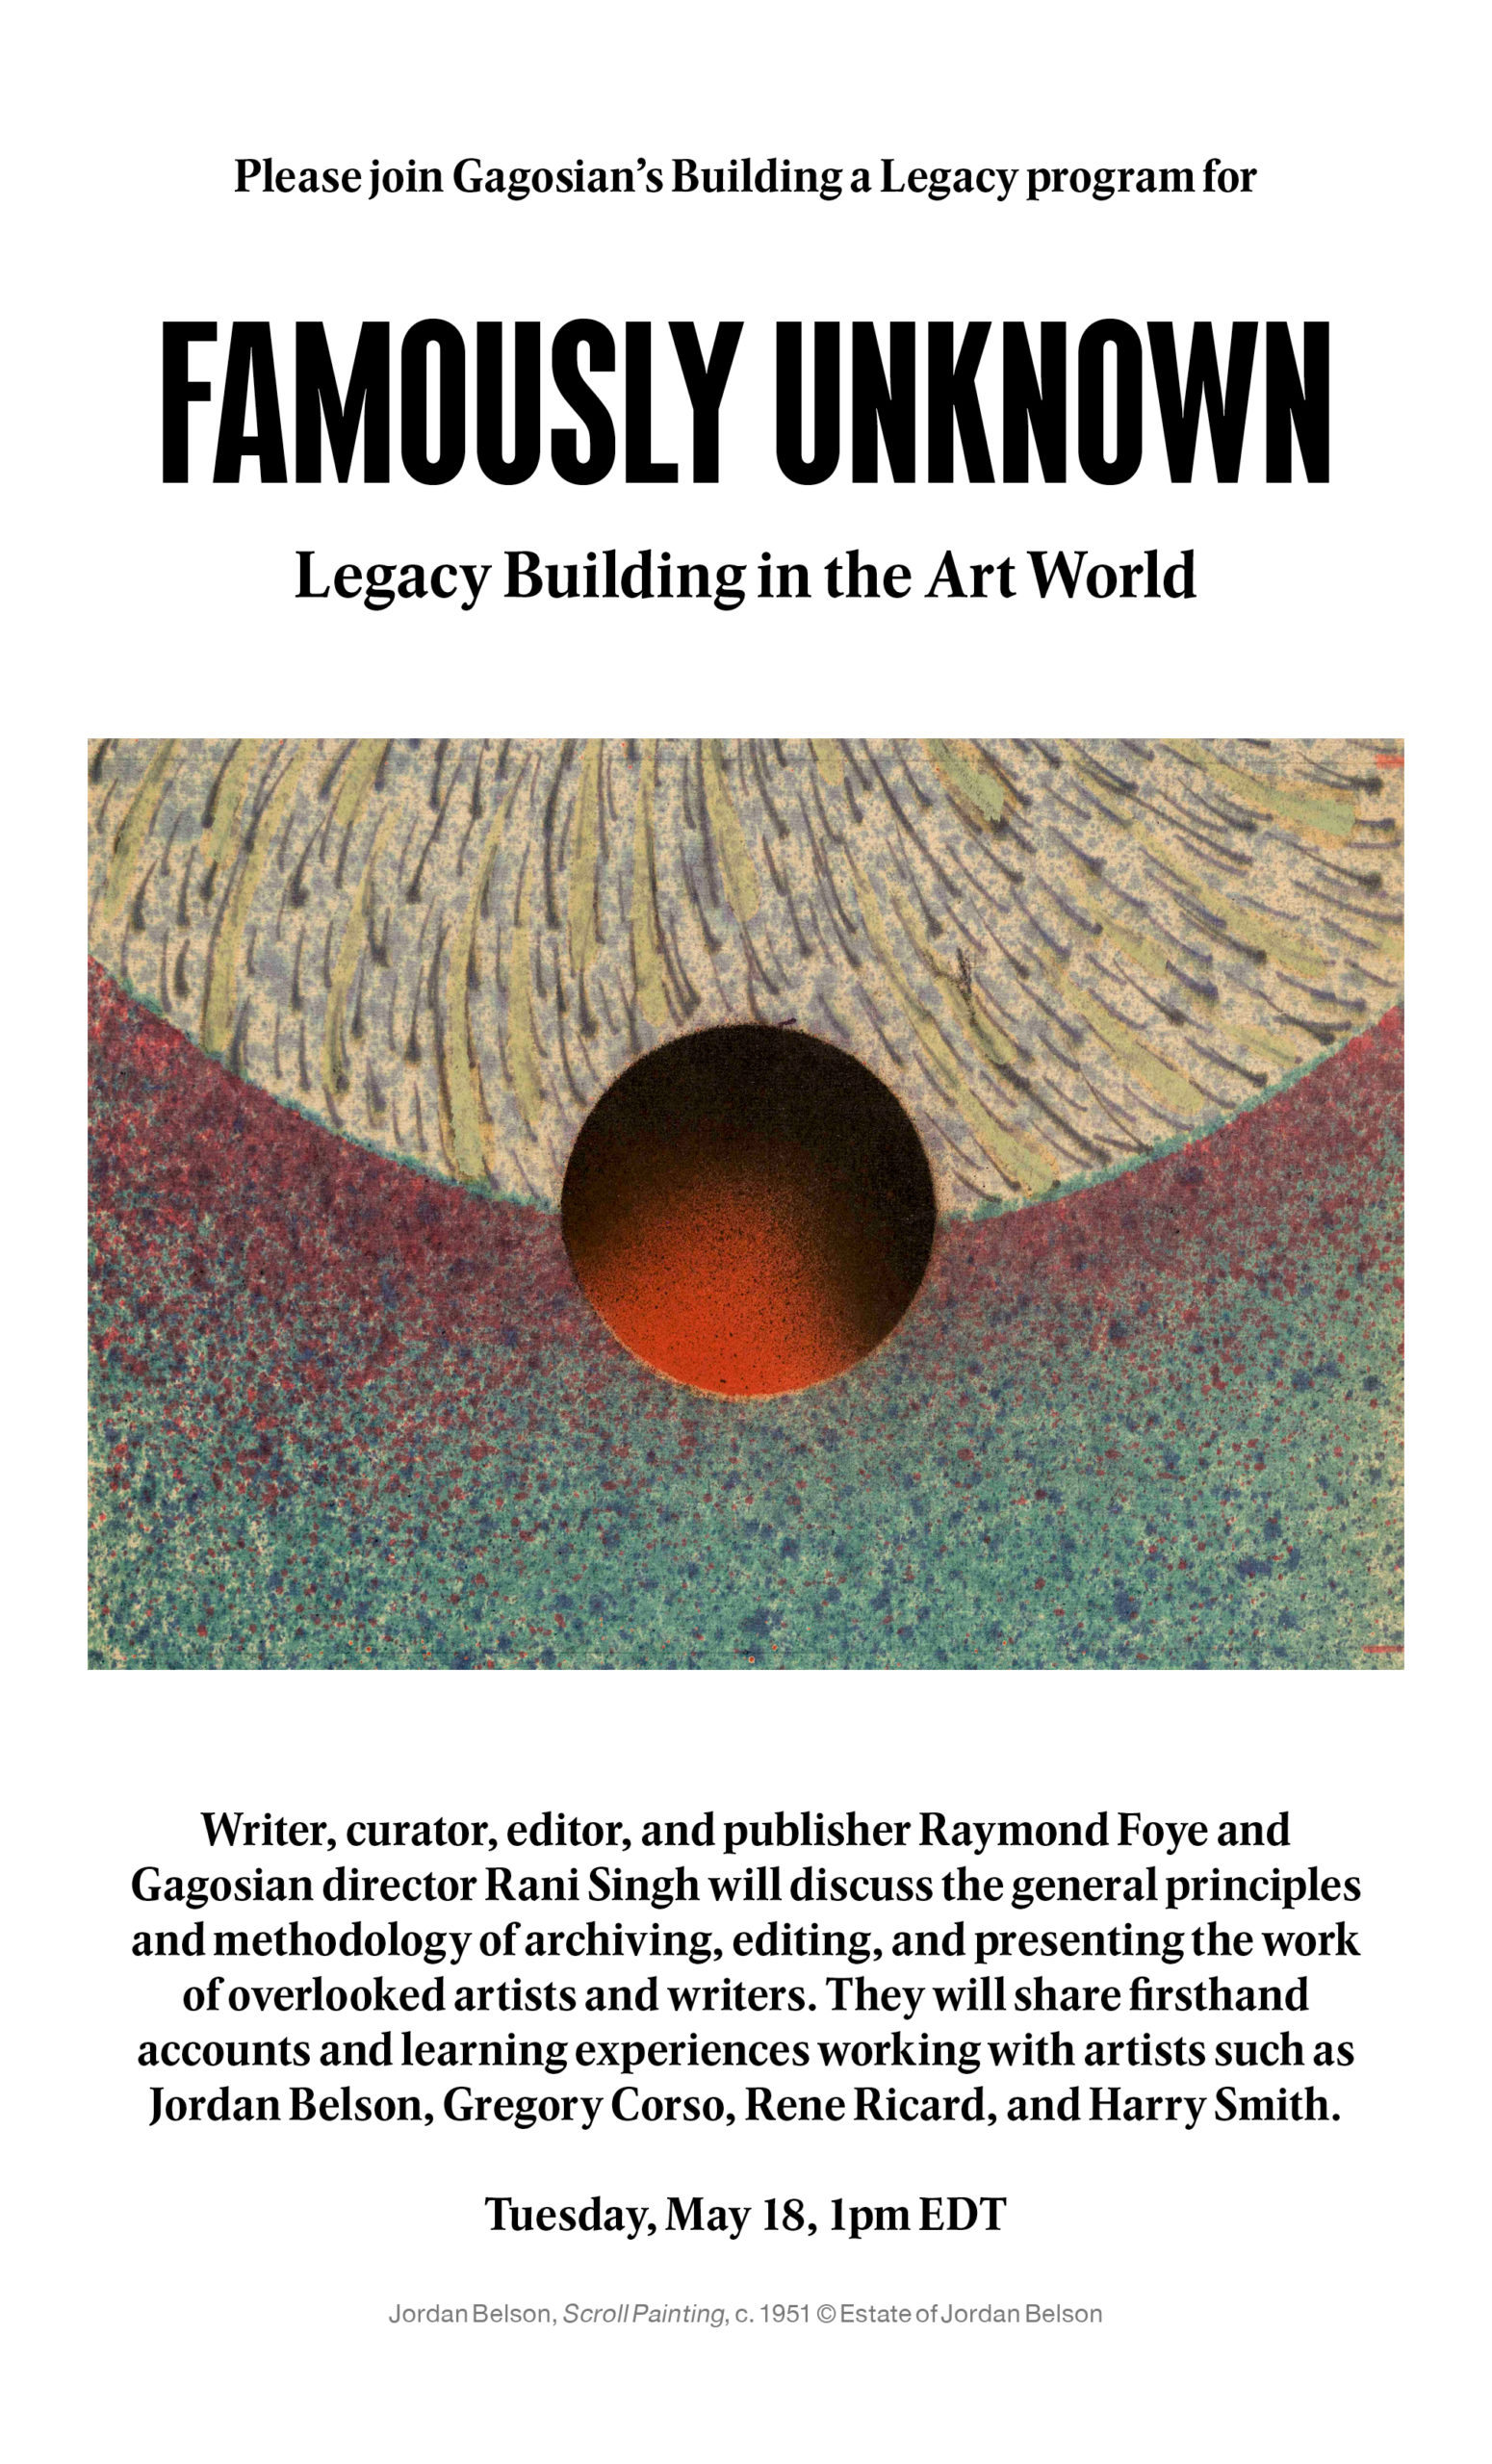 Famously Unknown: Legacy Building in the Art World